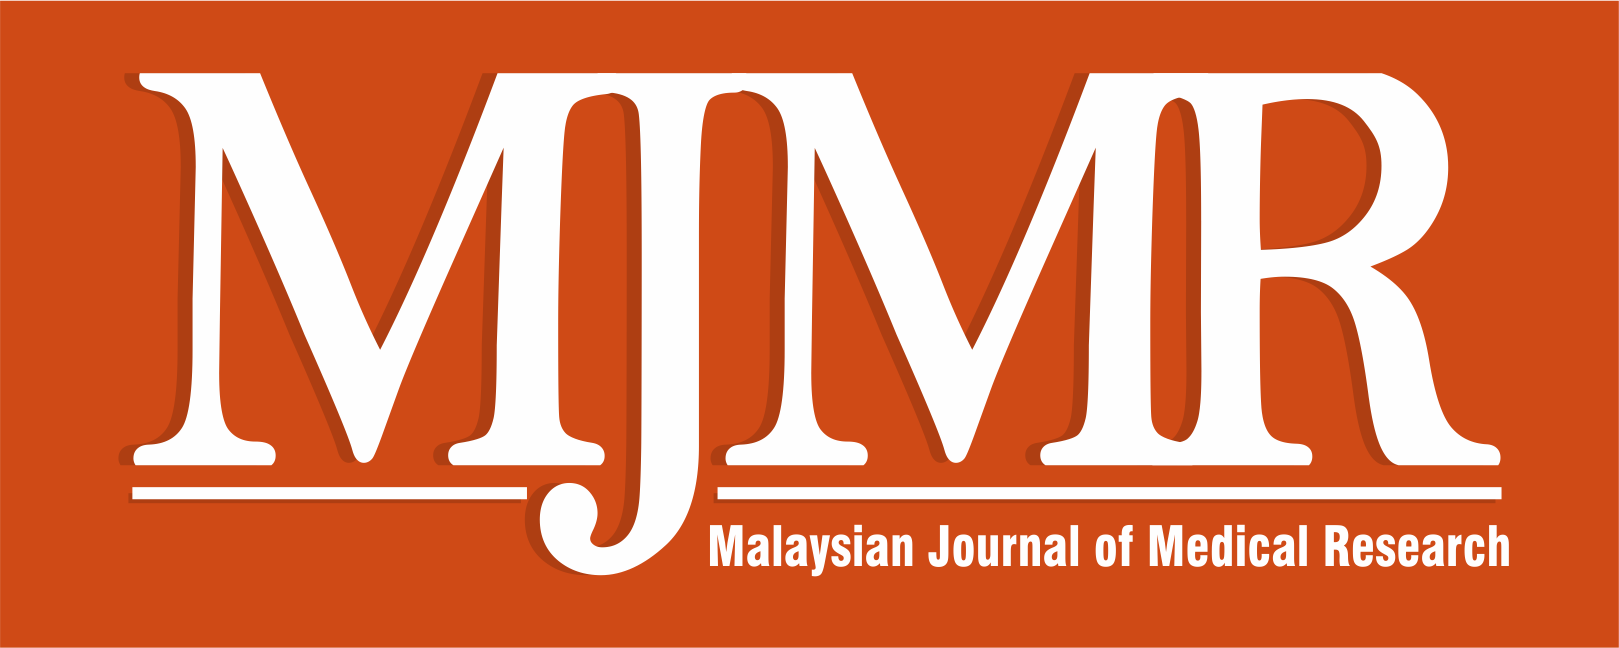 Malaysian Journal of Medical Research